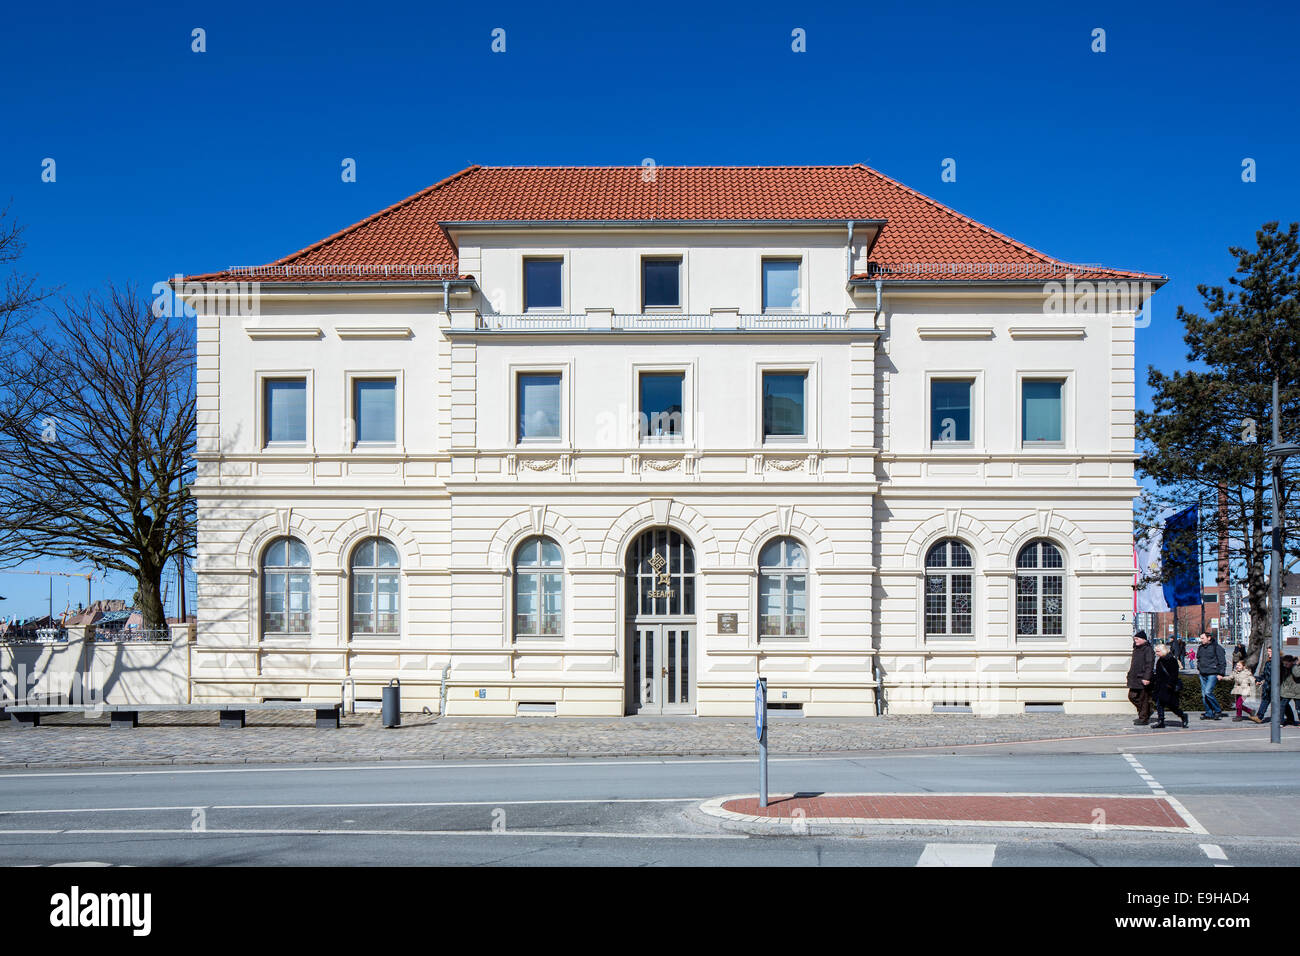 Old Port Authority, Maritime Authority, Bremerhaven, Bremen, Germany - Stock Image